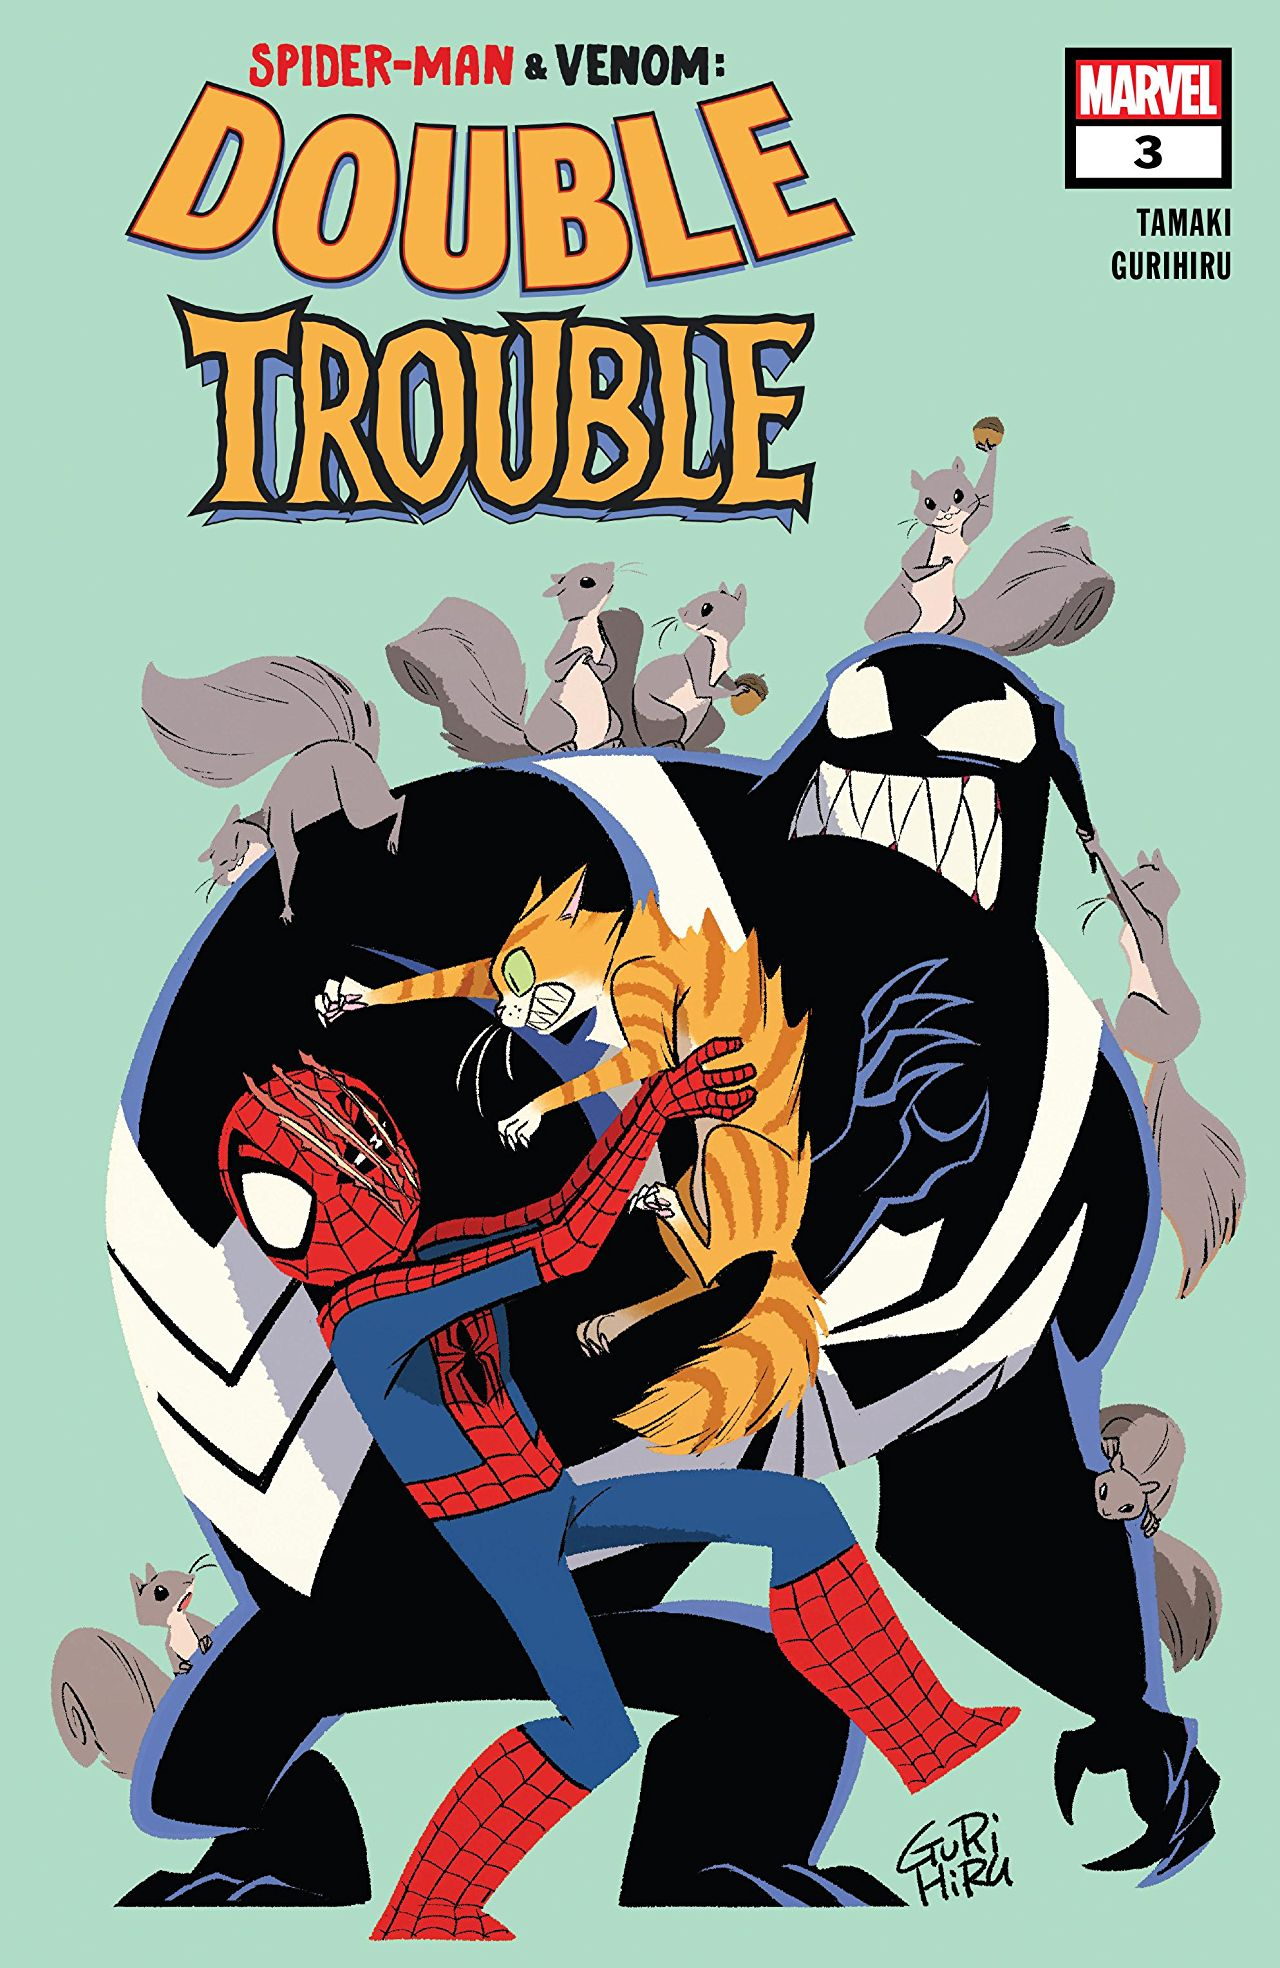 Spider-Man & Venom: Double Trouble Vol 1 3